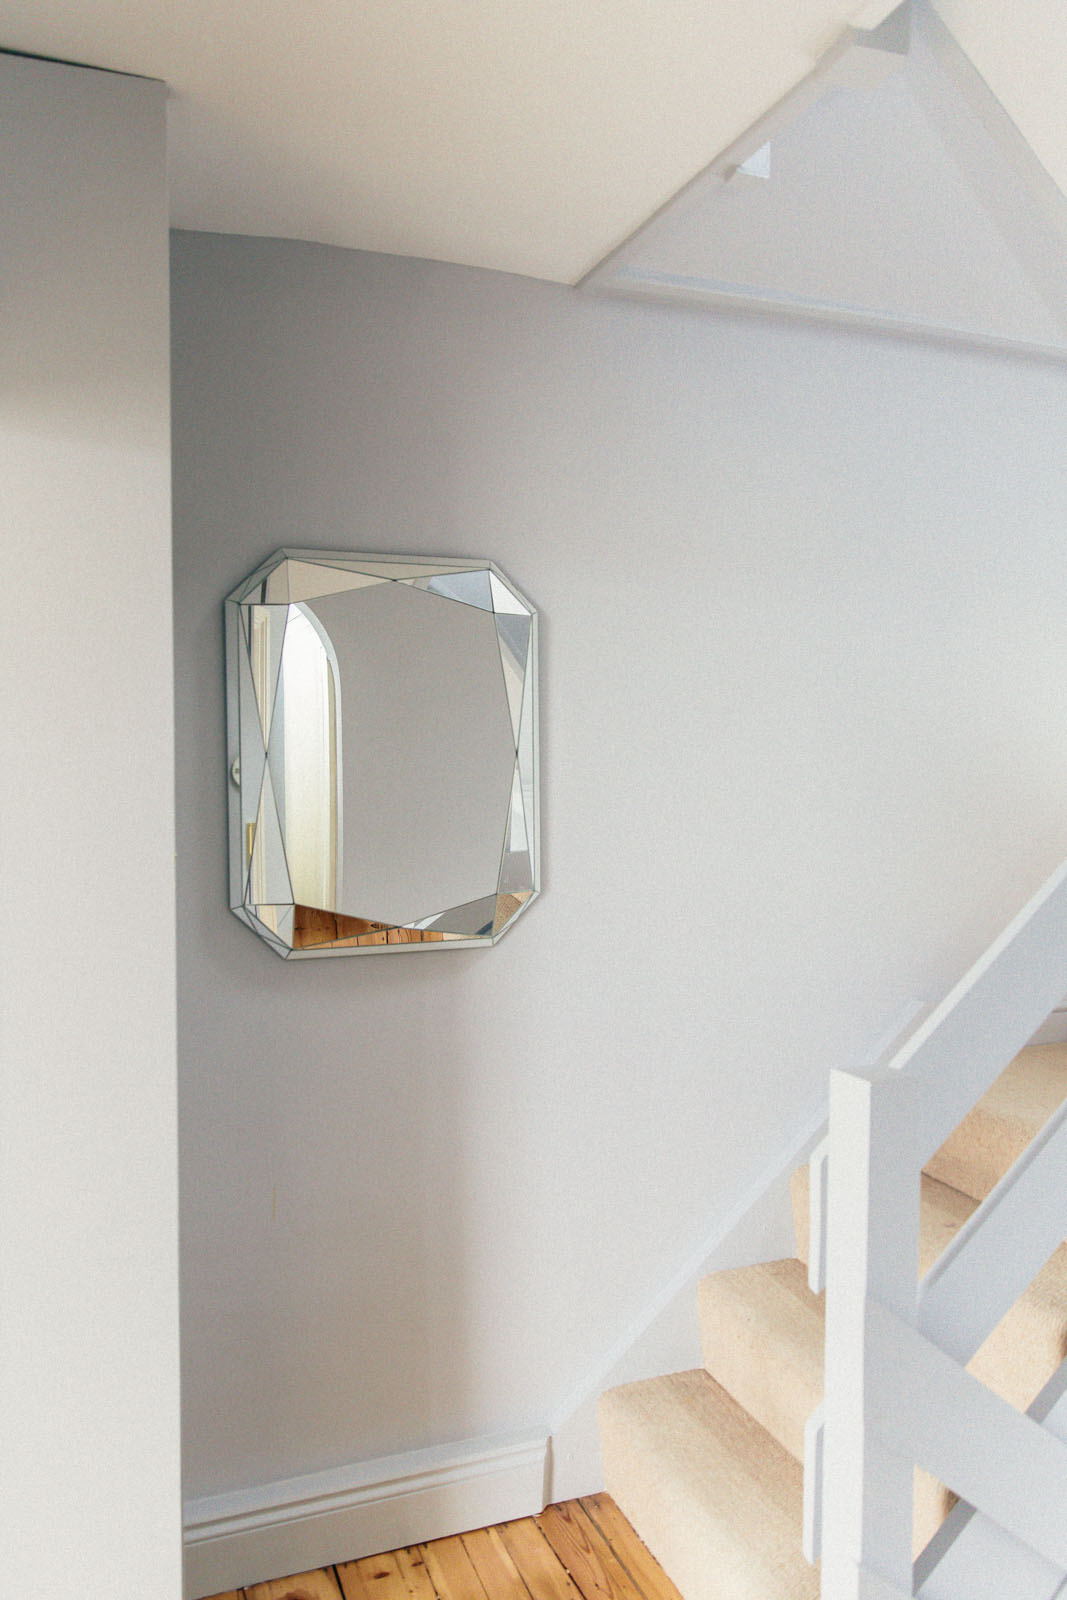 Designer staircase with mirror